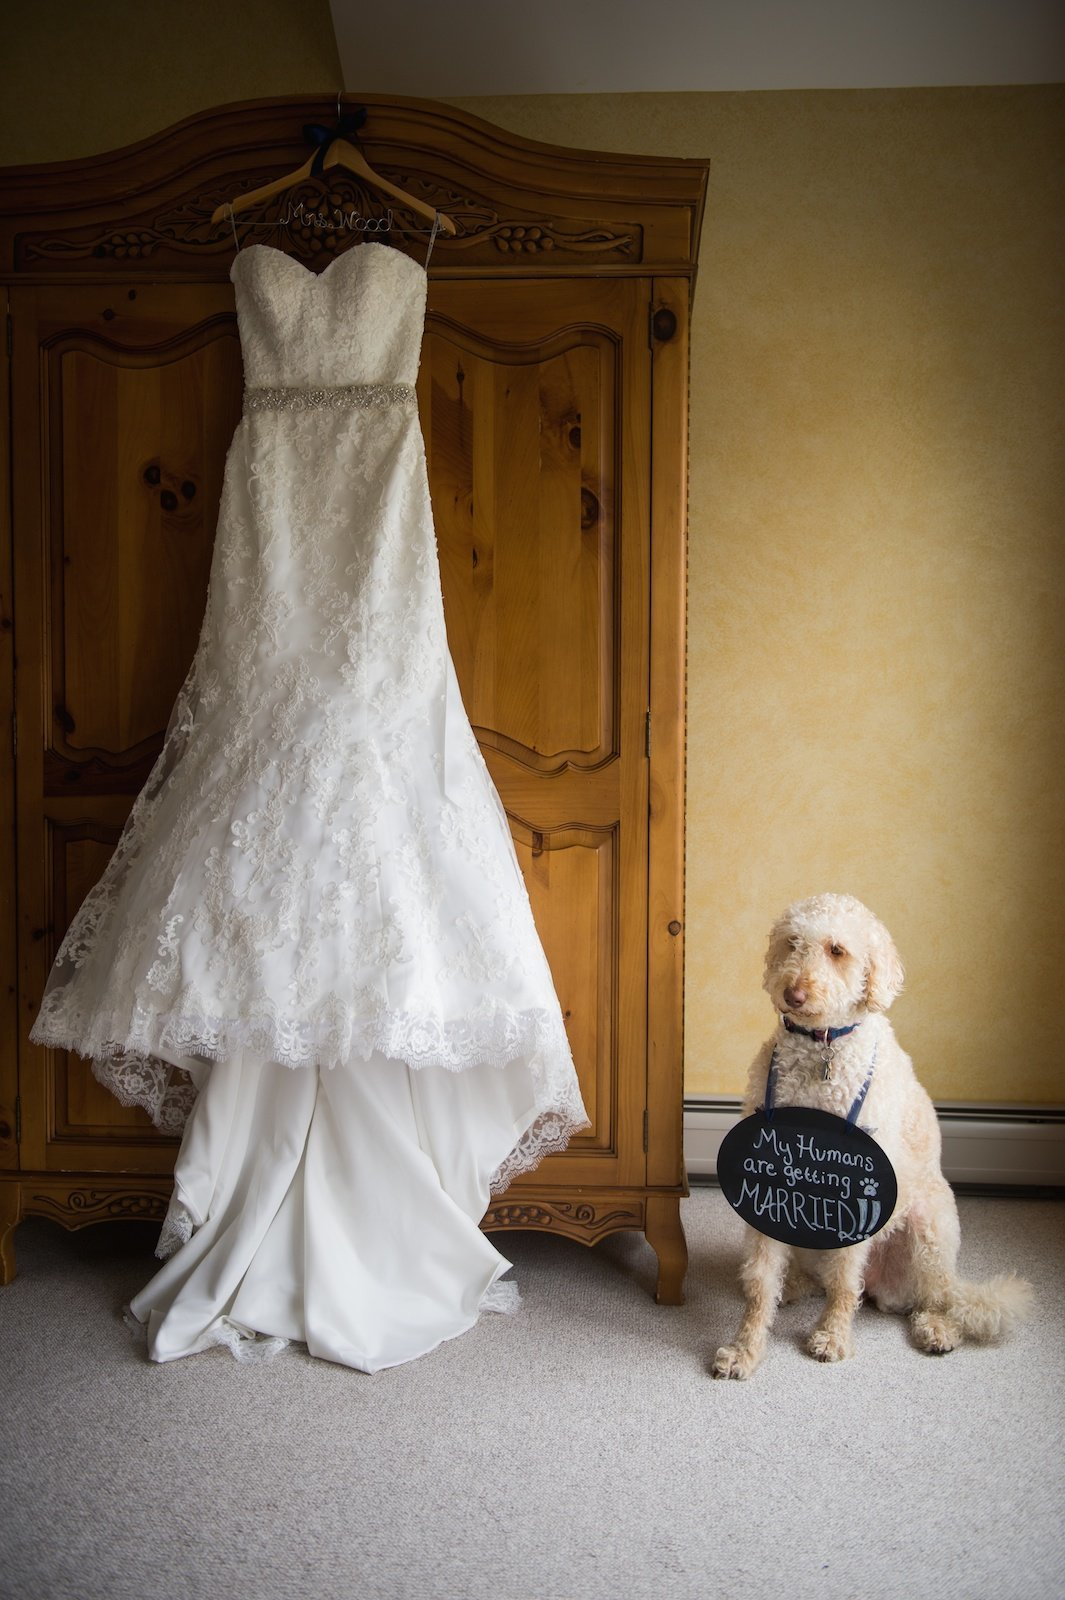 a dog and a wedding dress